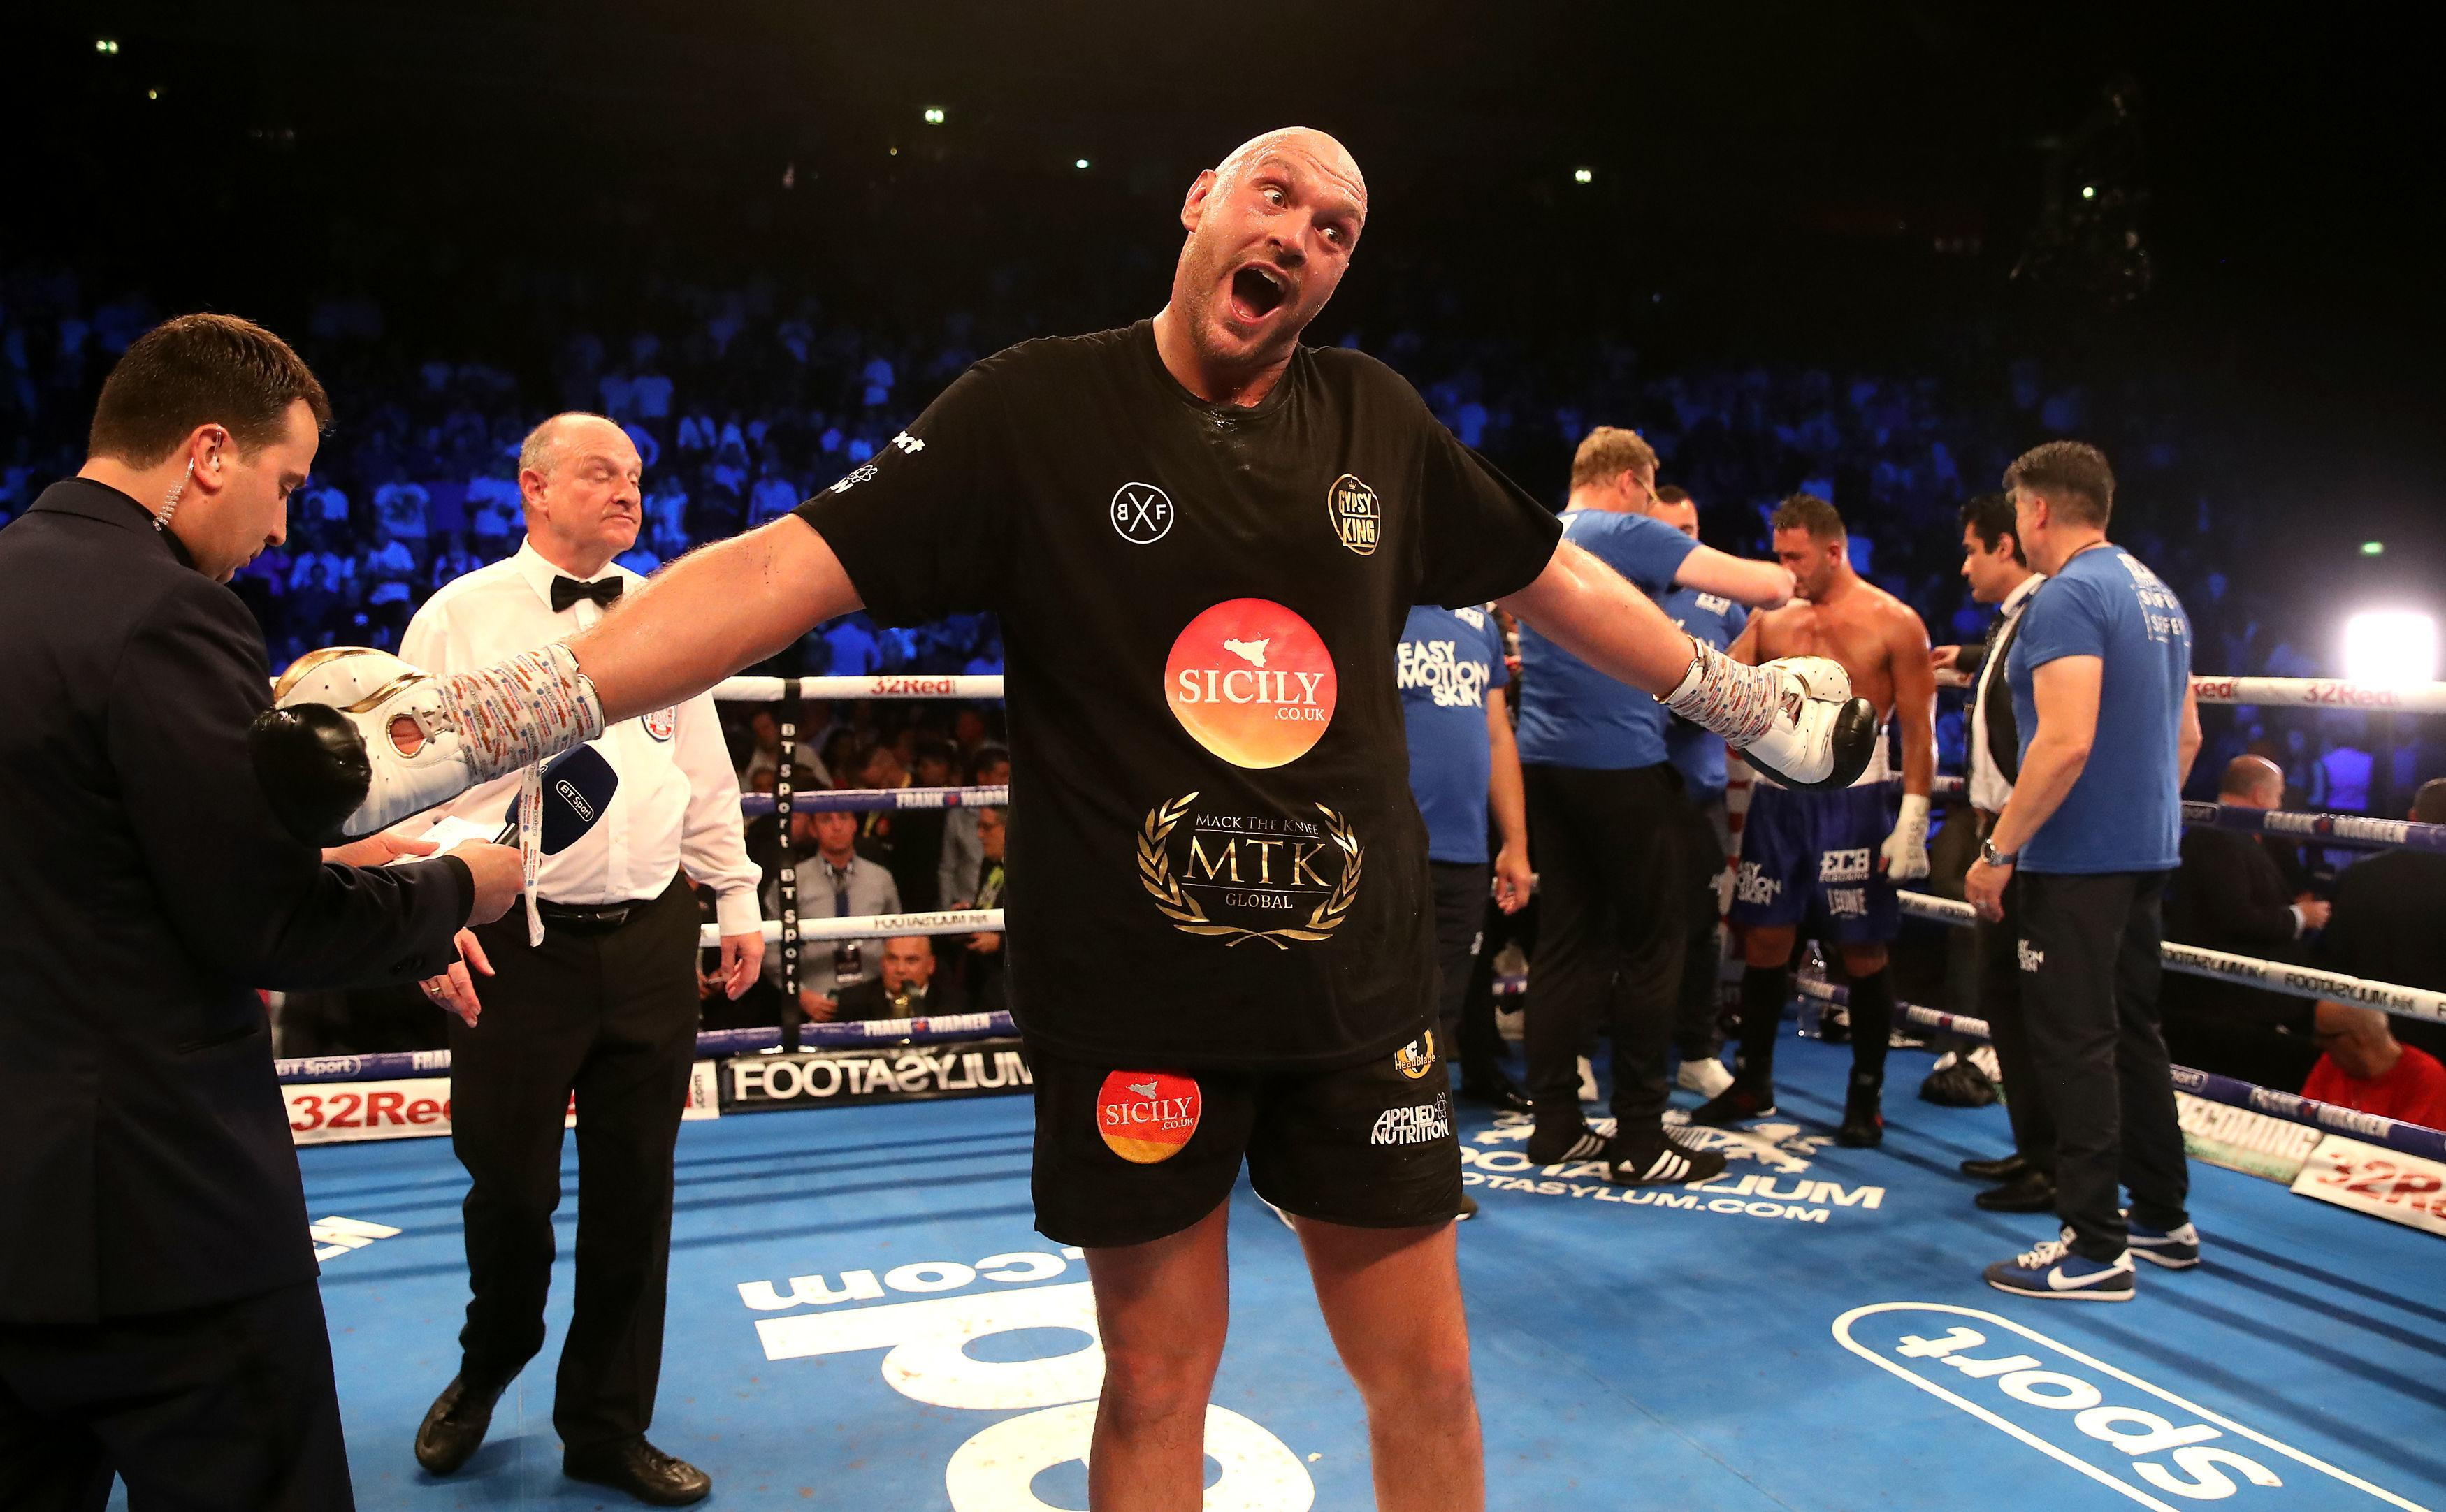 Tyson Fury did what everybody expected him to do - completely dominate a vastly inferior opponent